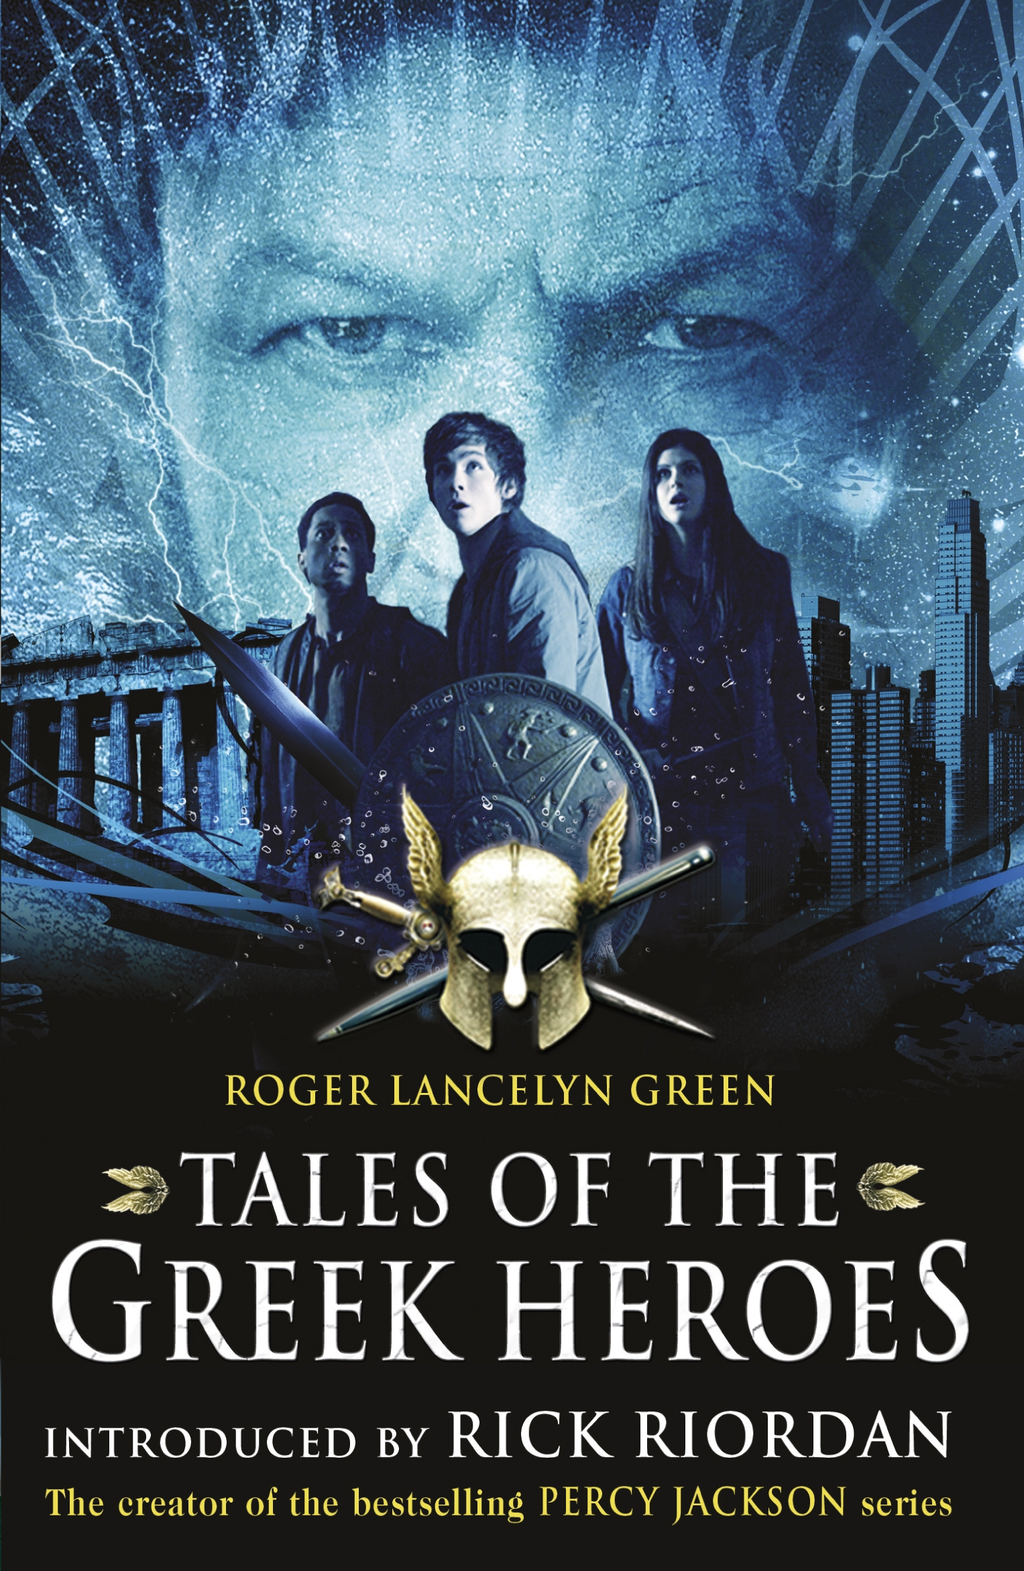 Tales of the Greek Heroes (Film Tie-in)